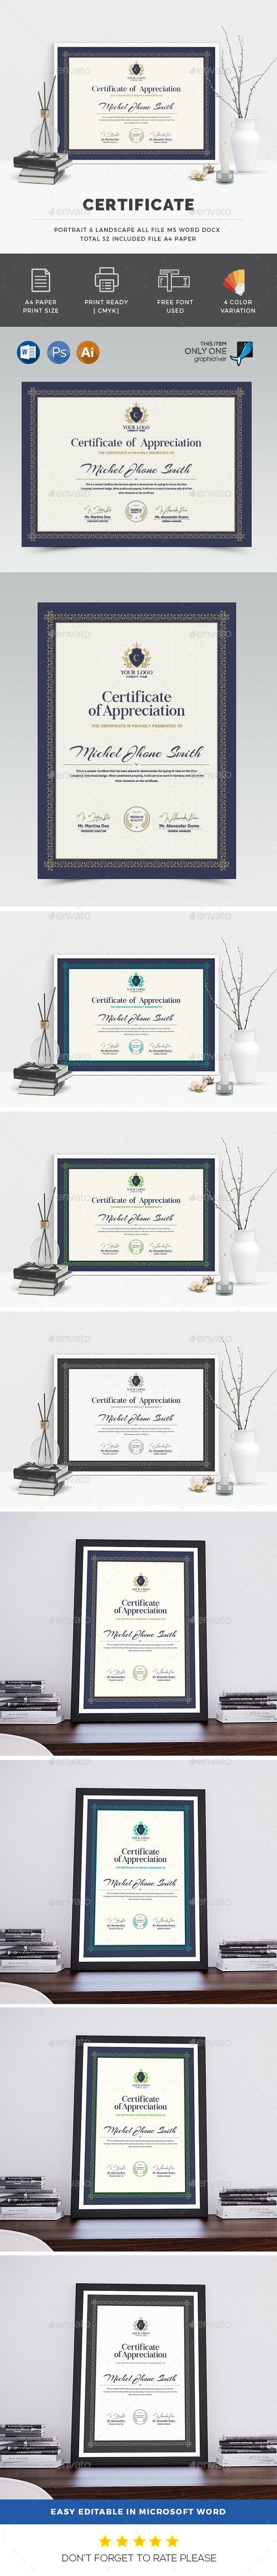 #Certificate - Certificates Stationery Download here: https://graphicriver.net/item/certificate/19515833?ref=alena994